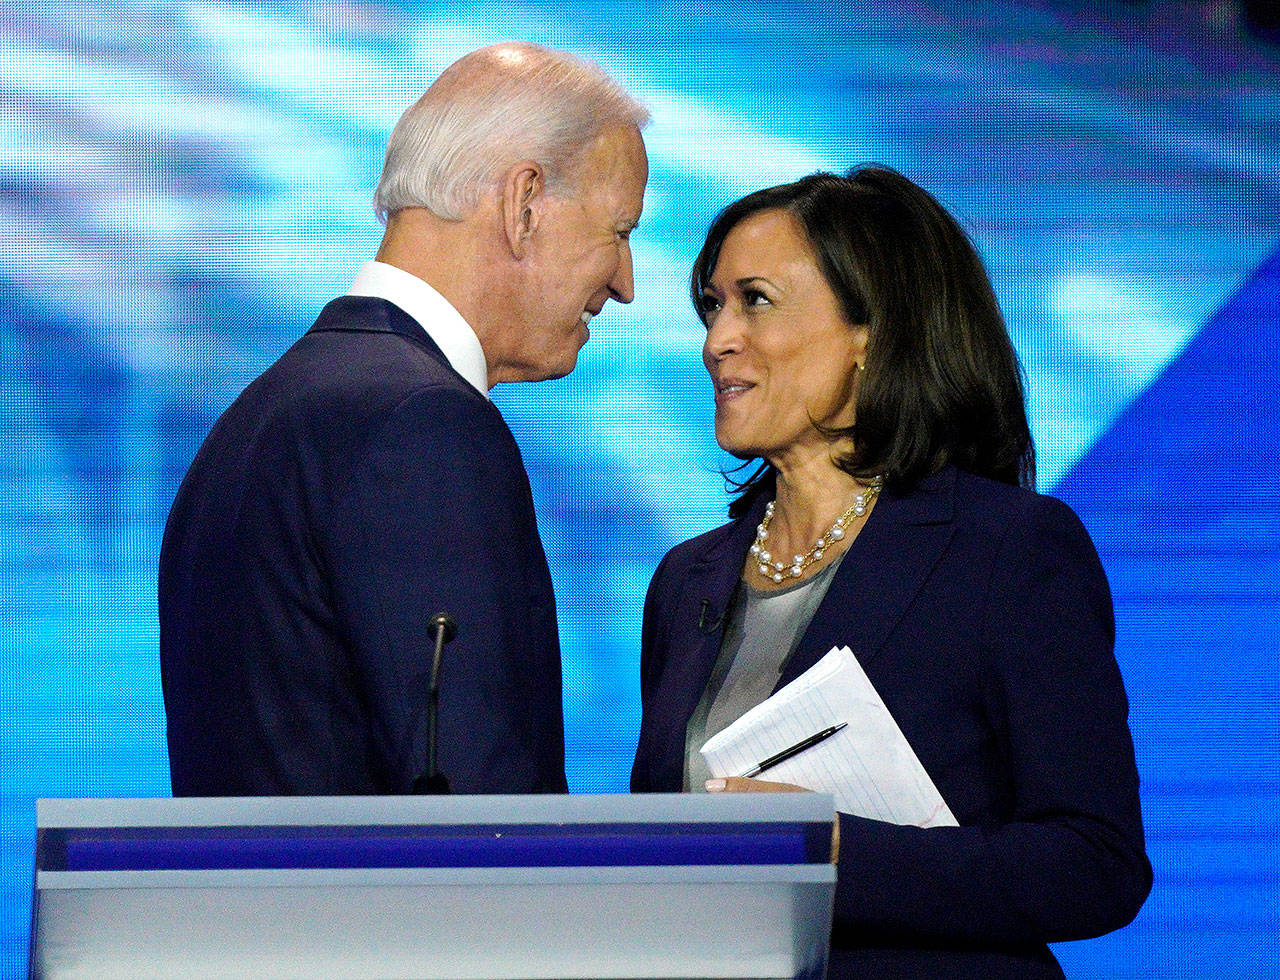 Democratic presidential candidate and former Vice President Joe Biden (left) and then-candidate Sen. Kamala Harris, D-Calif., shake hands after a Democratic presidential primary debate last September. (AP Photo/David J. Phillip, File)